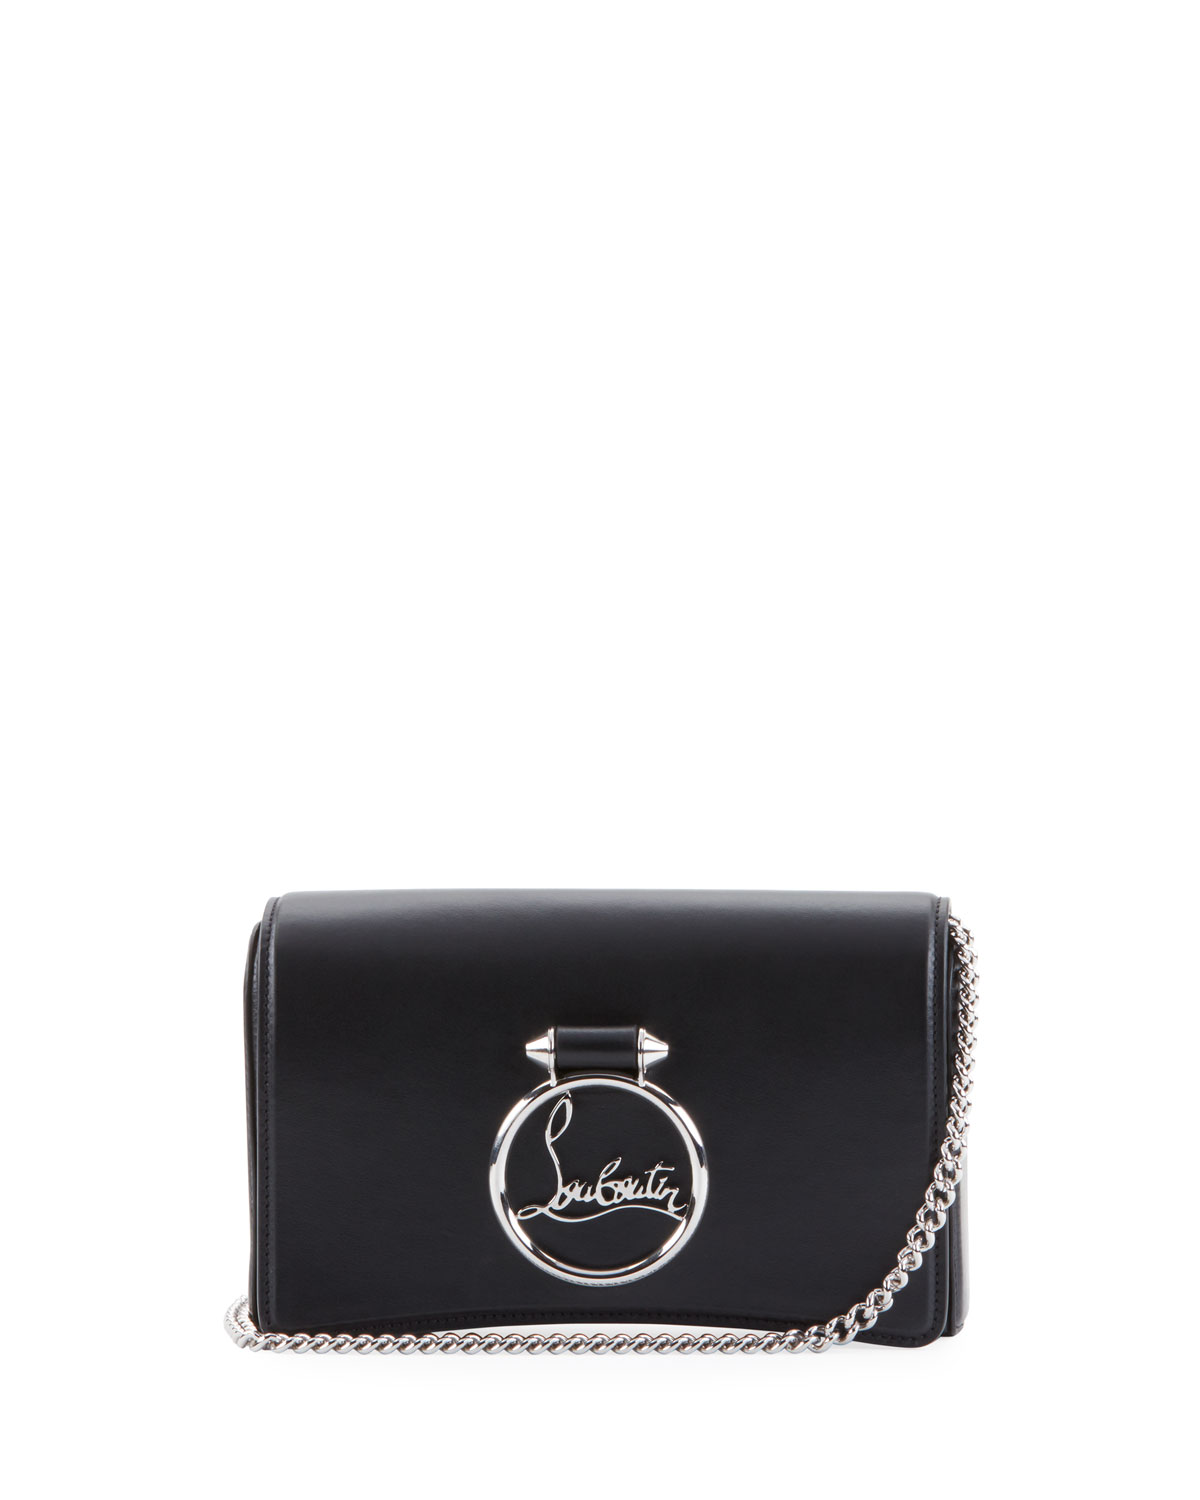 32695ca51d8 Ruby Lou Leather Logo-Ring Clutch Bag